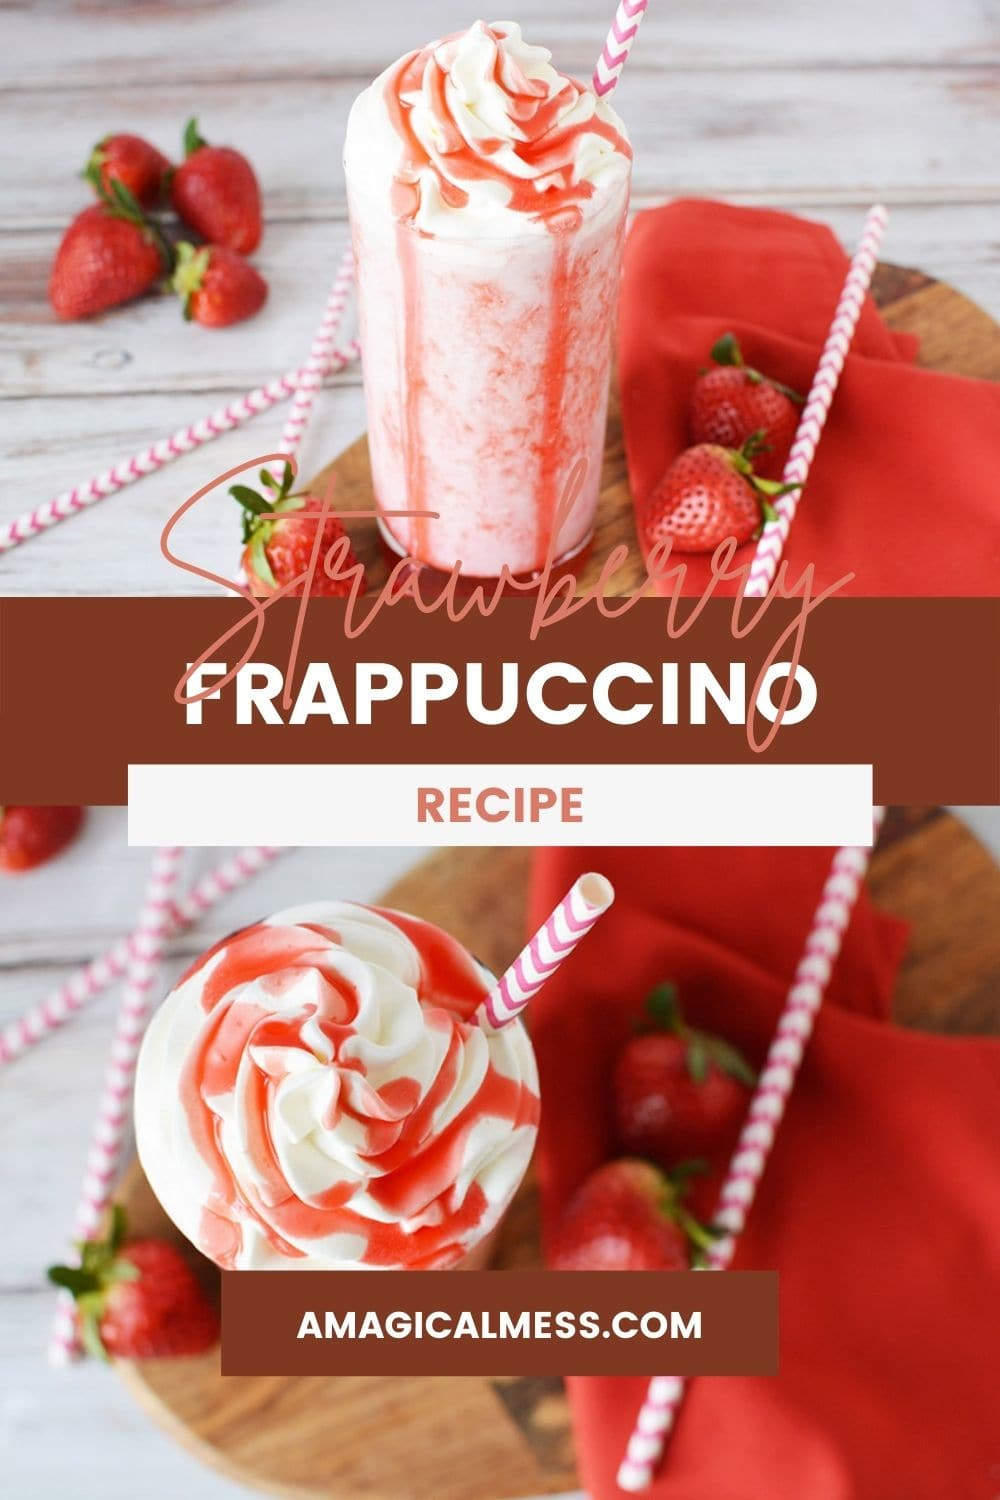 Strawberry blended drink in a glass topped with whipped cream and red syrup.